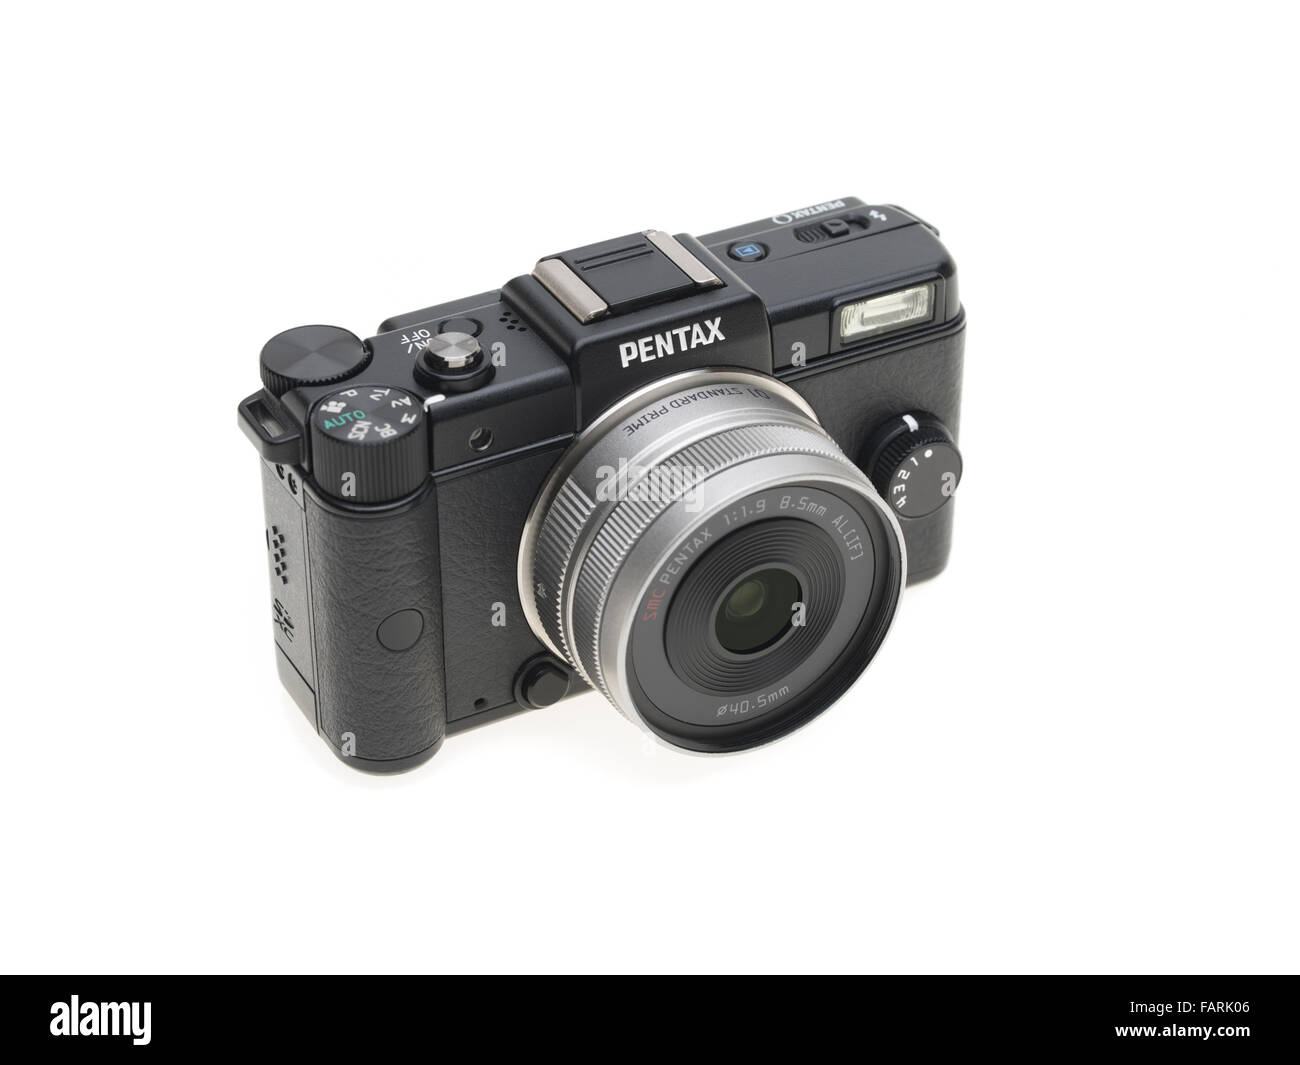 Pentax q'un minuscule mirrorless interchangeable-lens camera numérique introduit en 2011 Banque D'Images